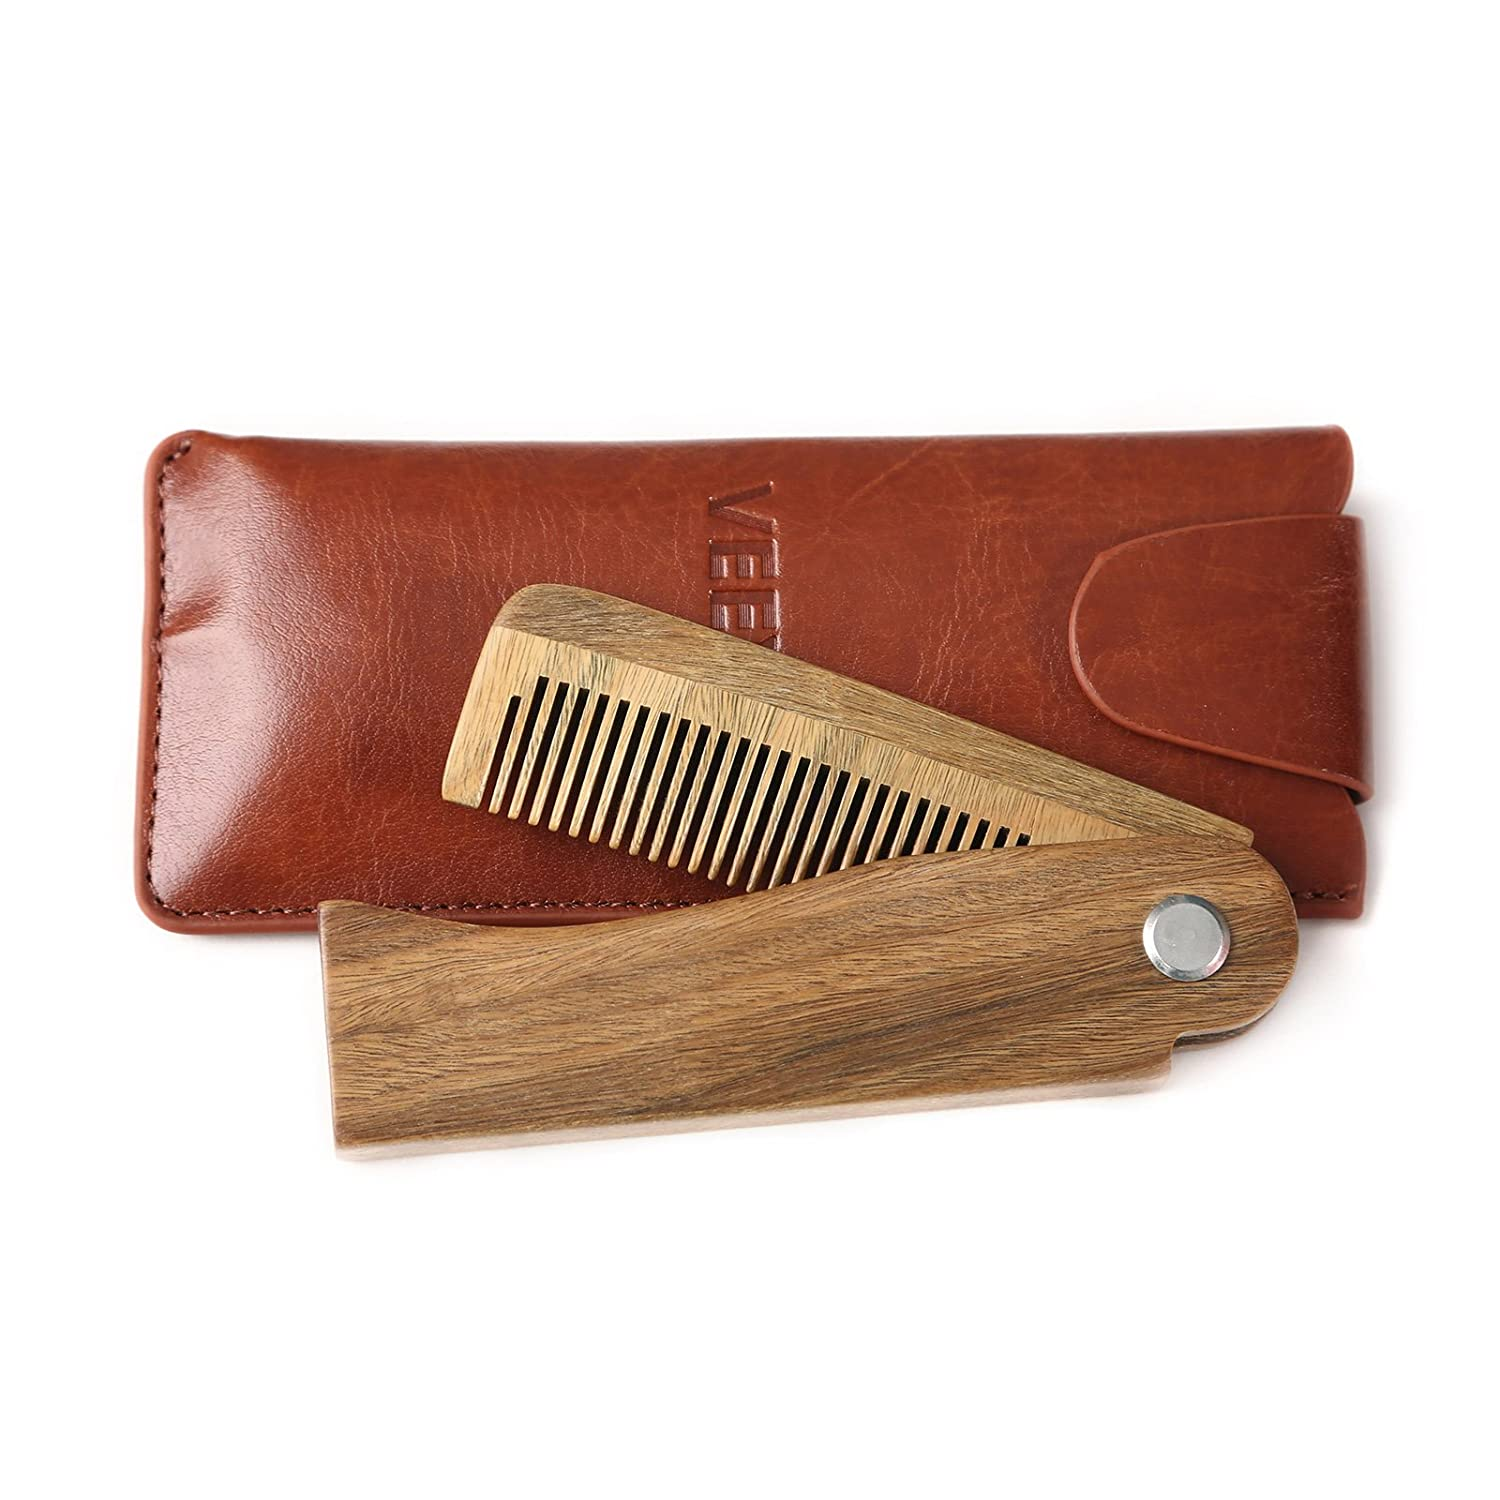 VEEYOO Beard Comb & Case, Fine & Coarse Teeth Pocket Comb for Hair Beard and Mustaches Anti Static Green Sandalwood Comb